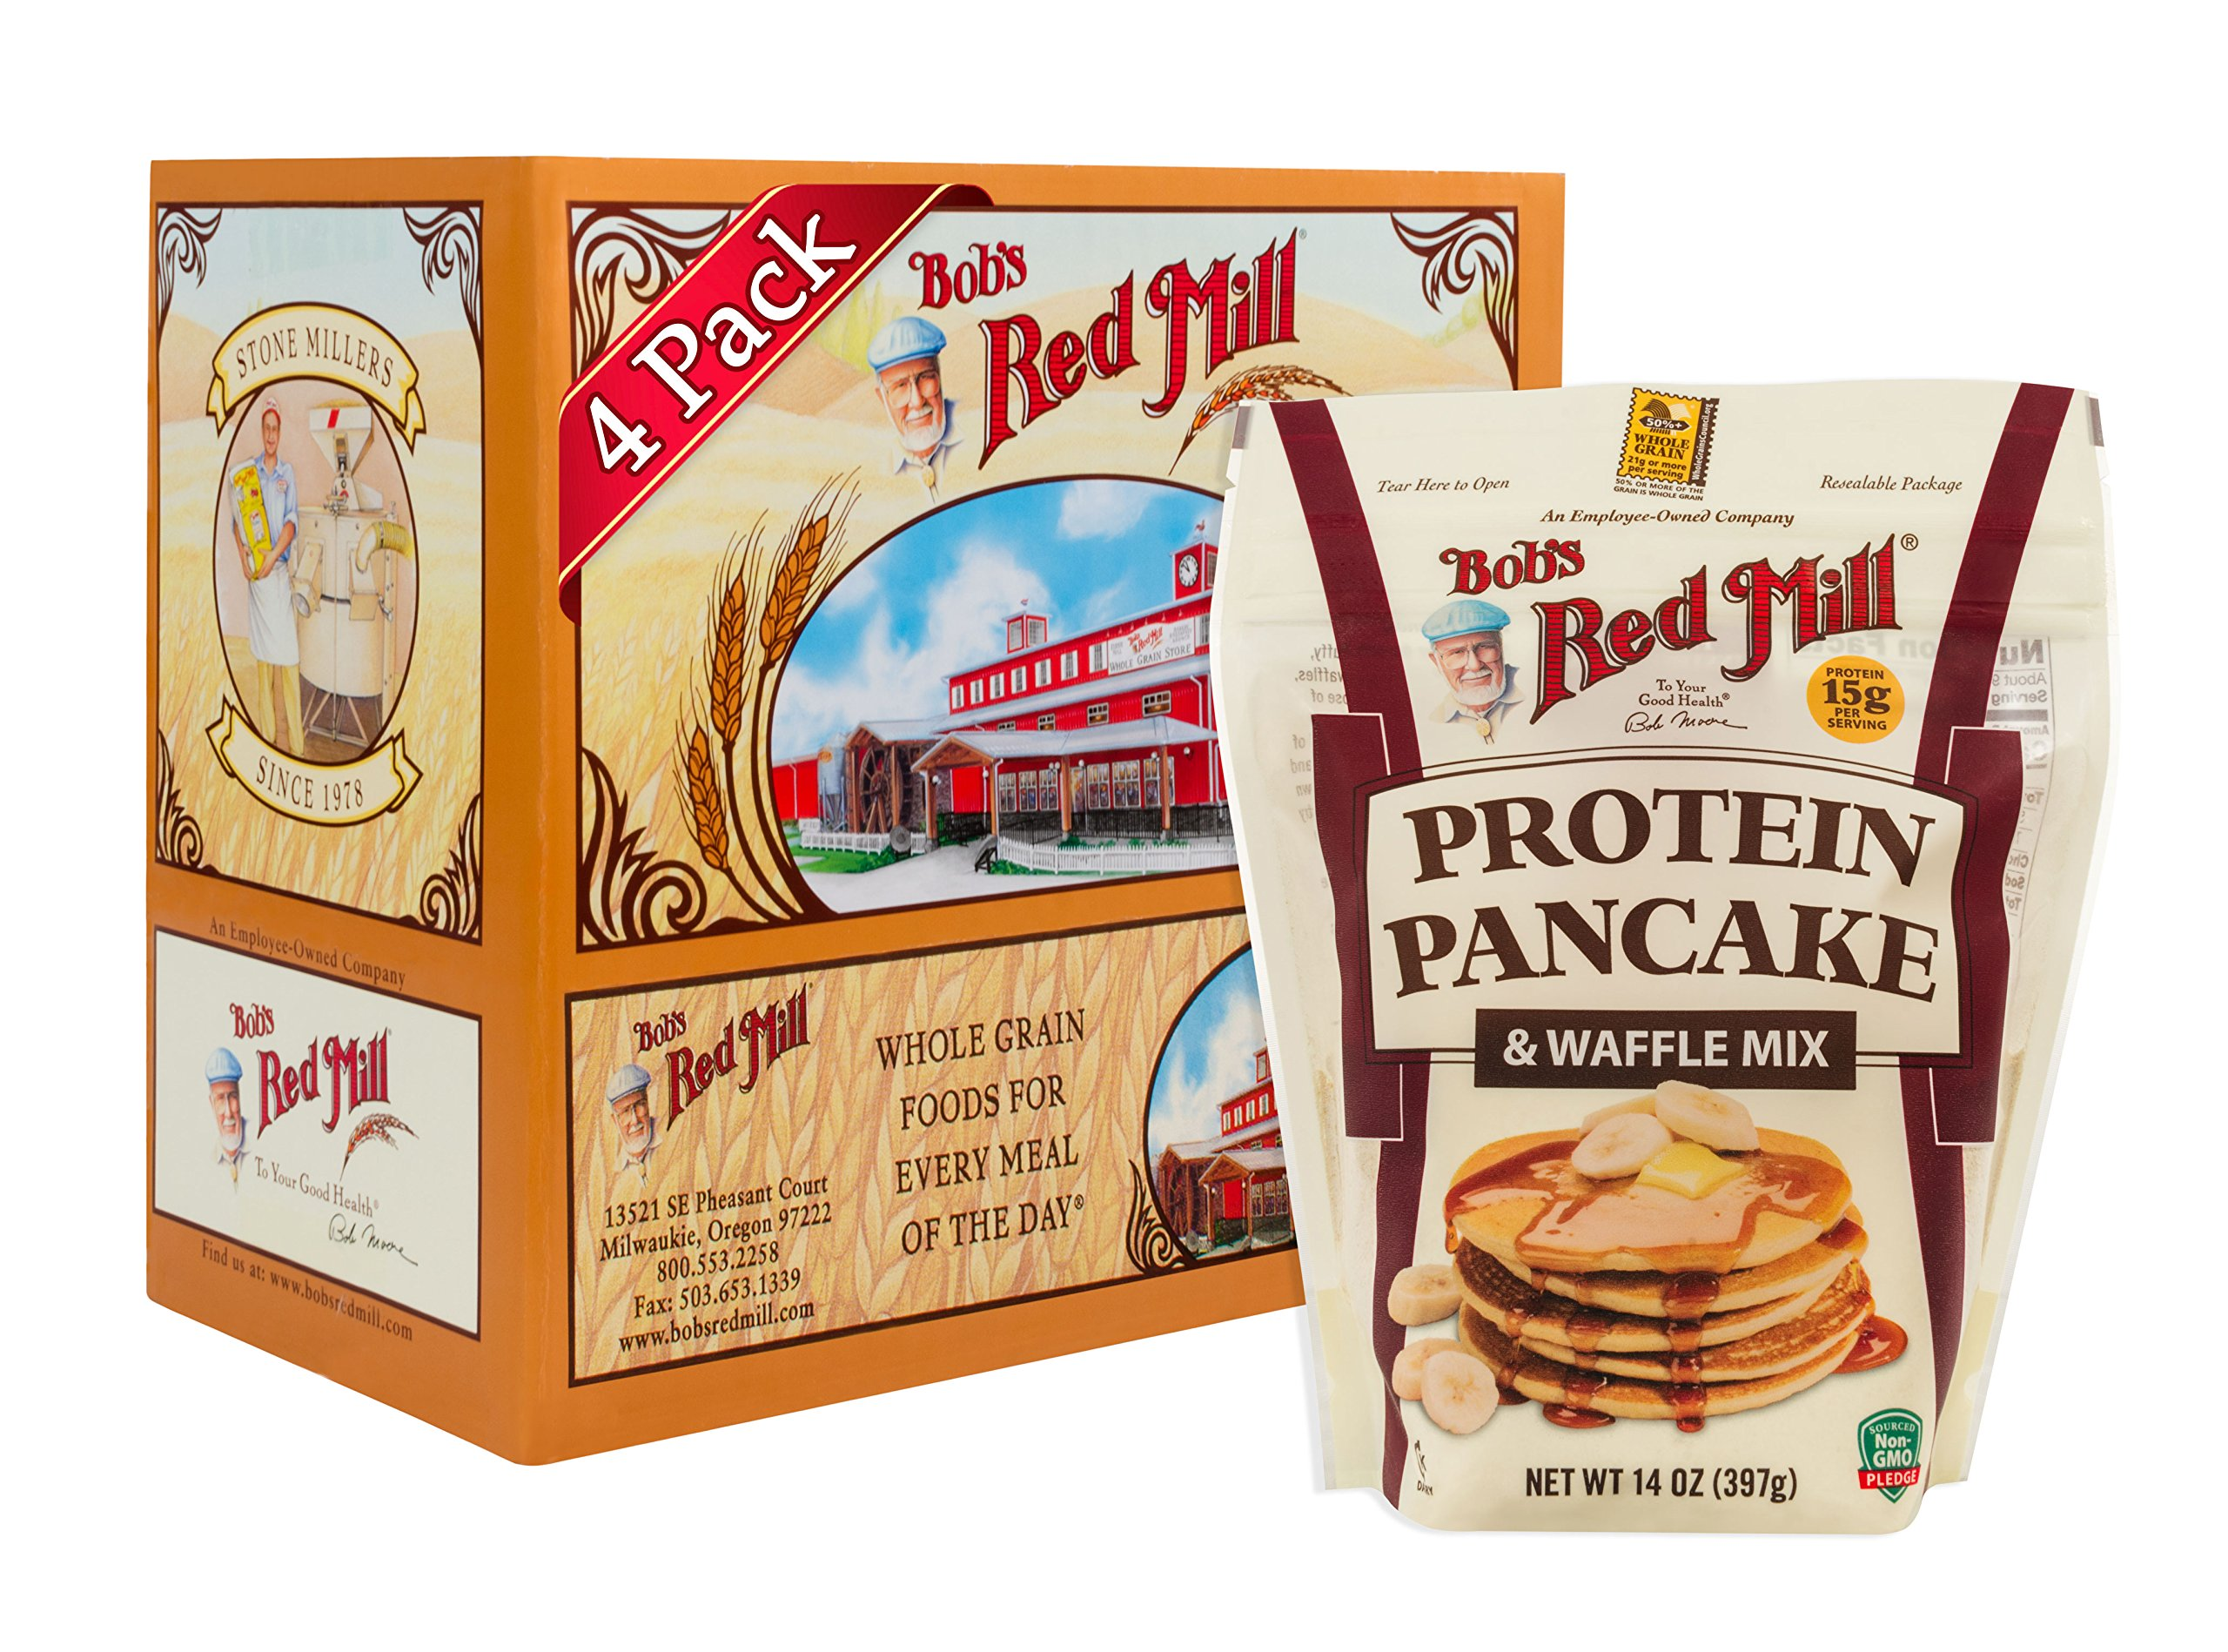 Bob's Red Mill Resealable Protein Pancake & Waffle Mix, 14 Oz (4 Pack) by Bob's Red Mill